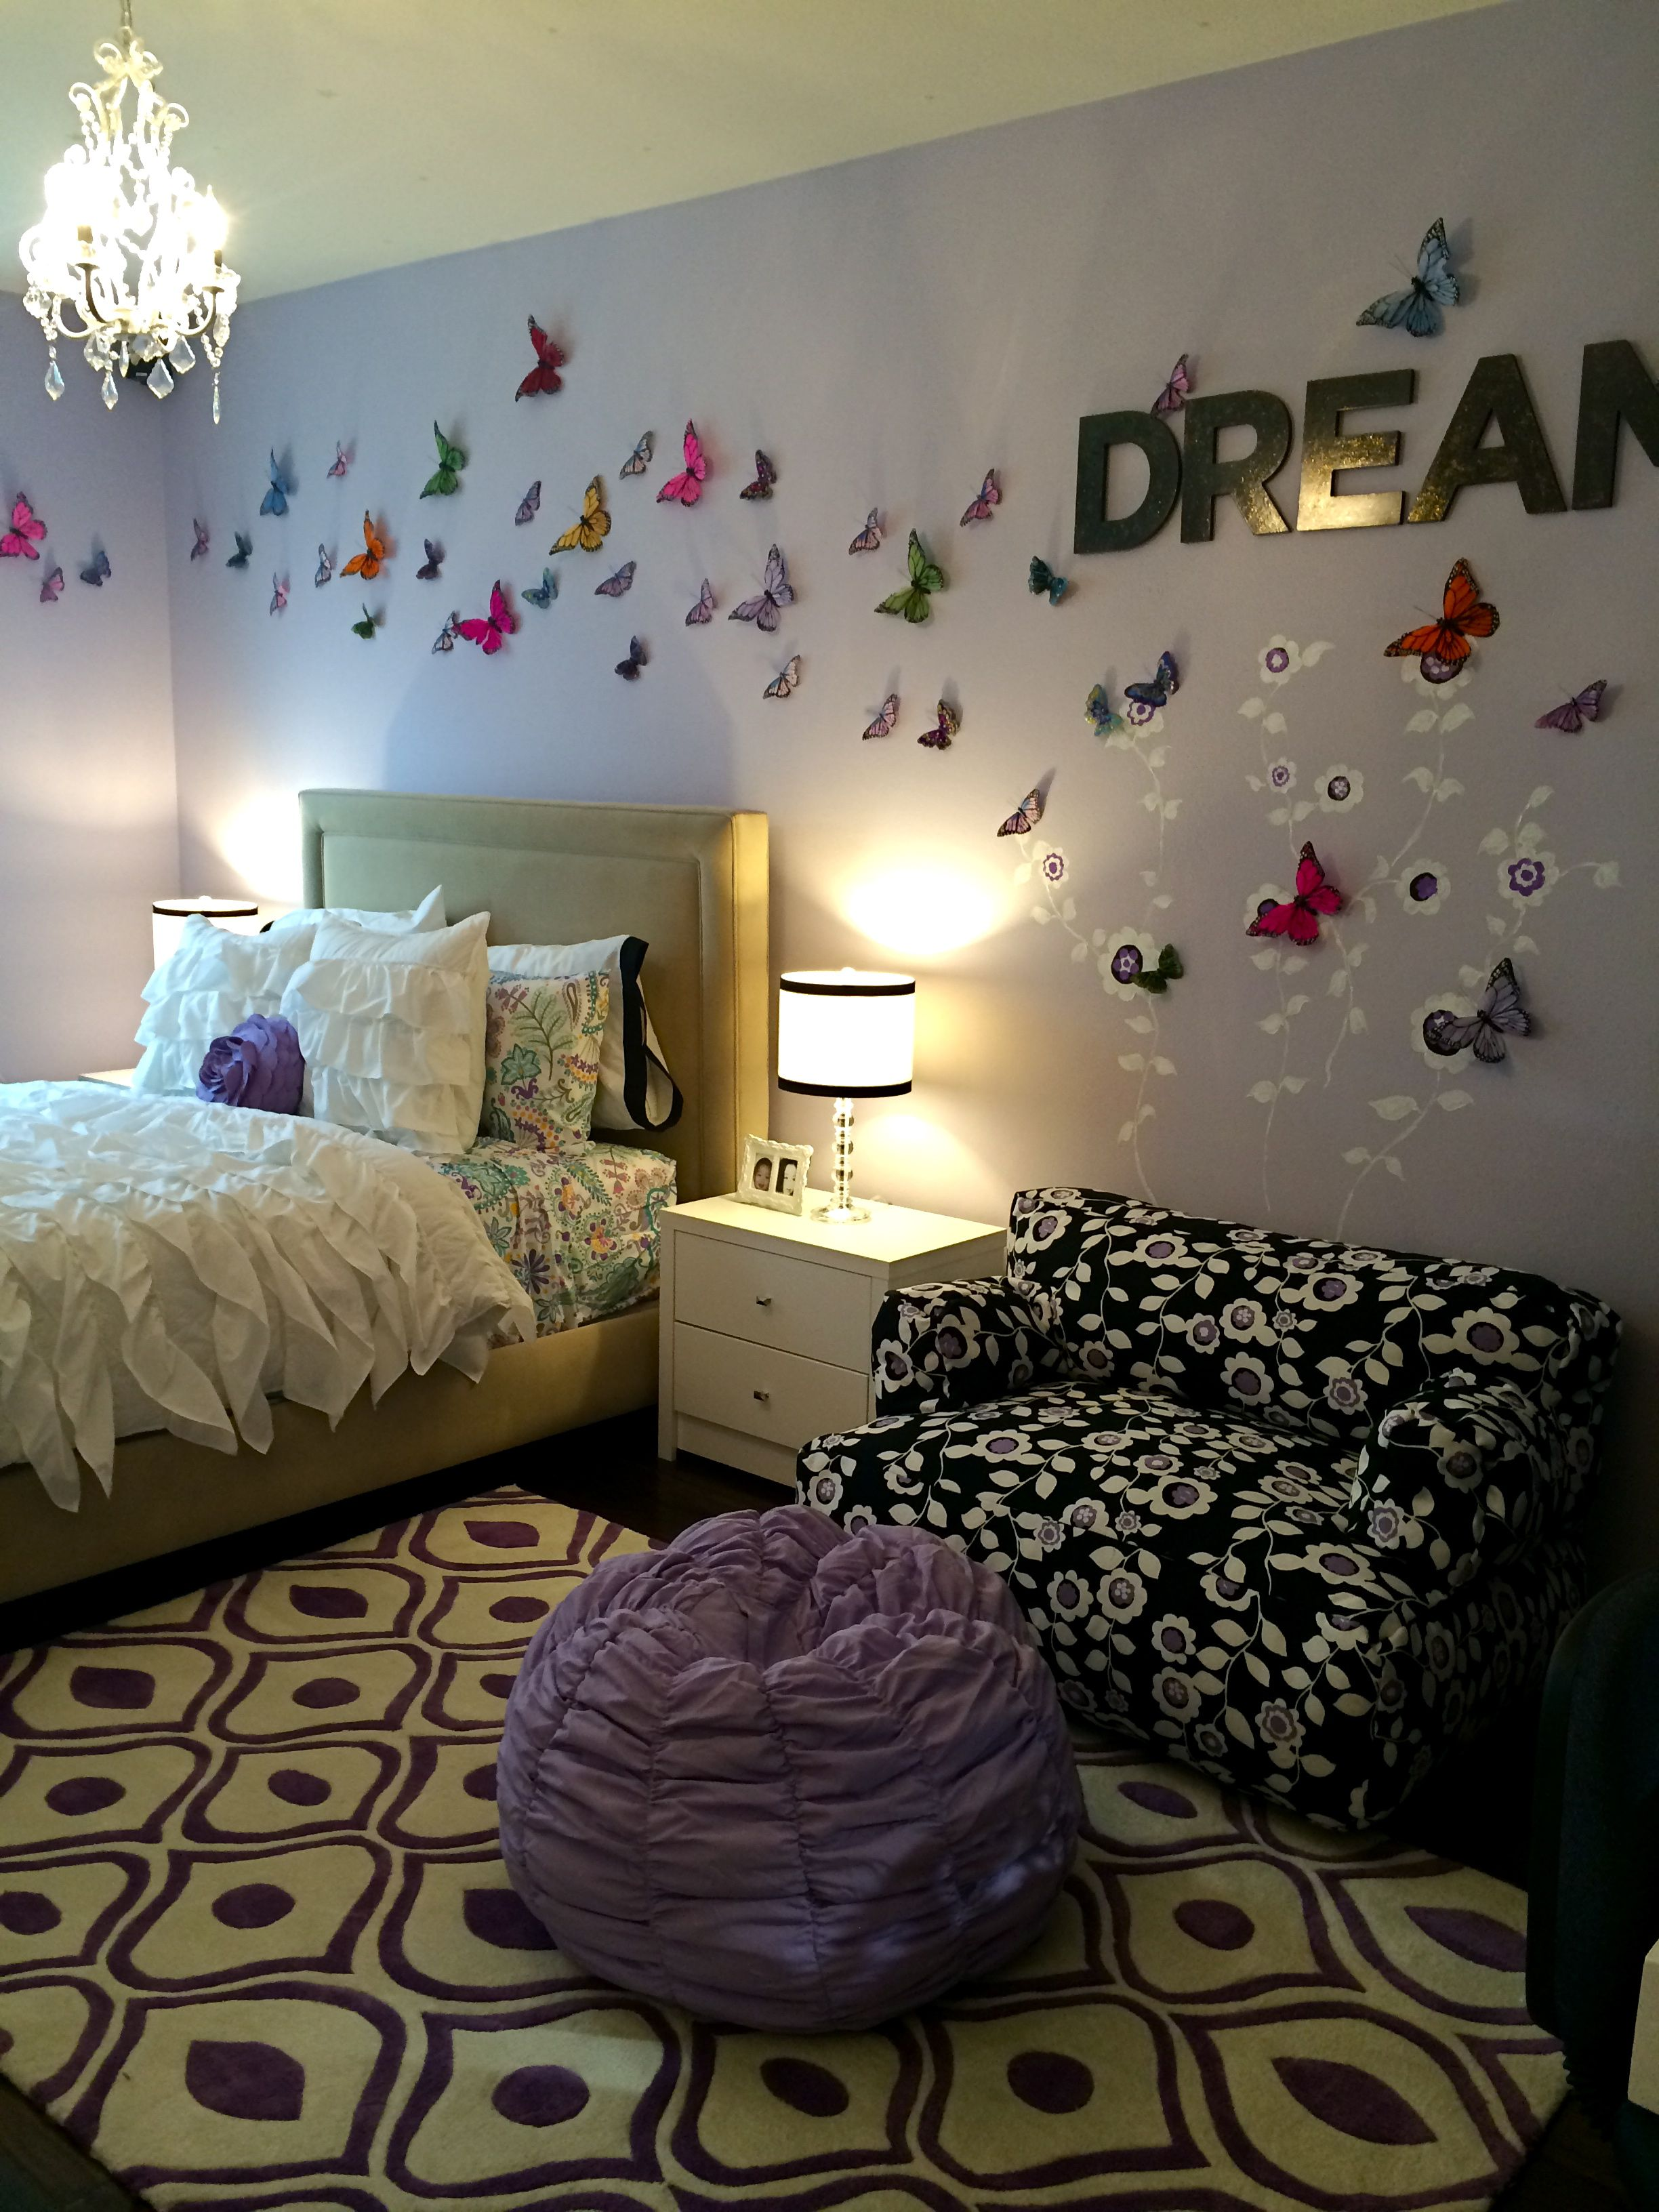 A 10 year old girls dream bedroom contact www 4g designs com to create your beautiful room